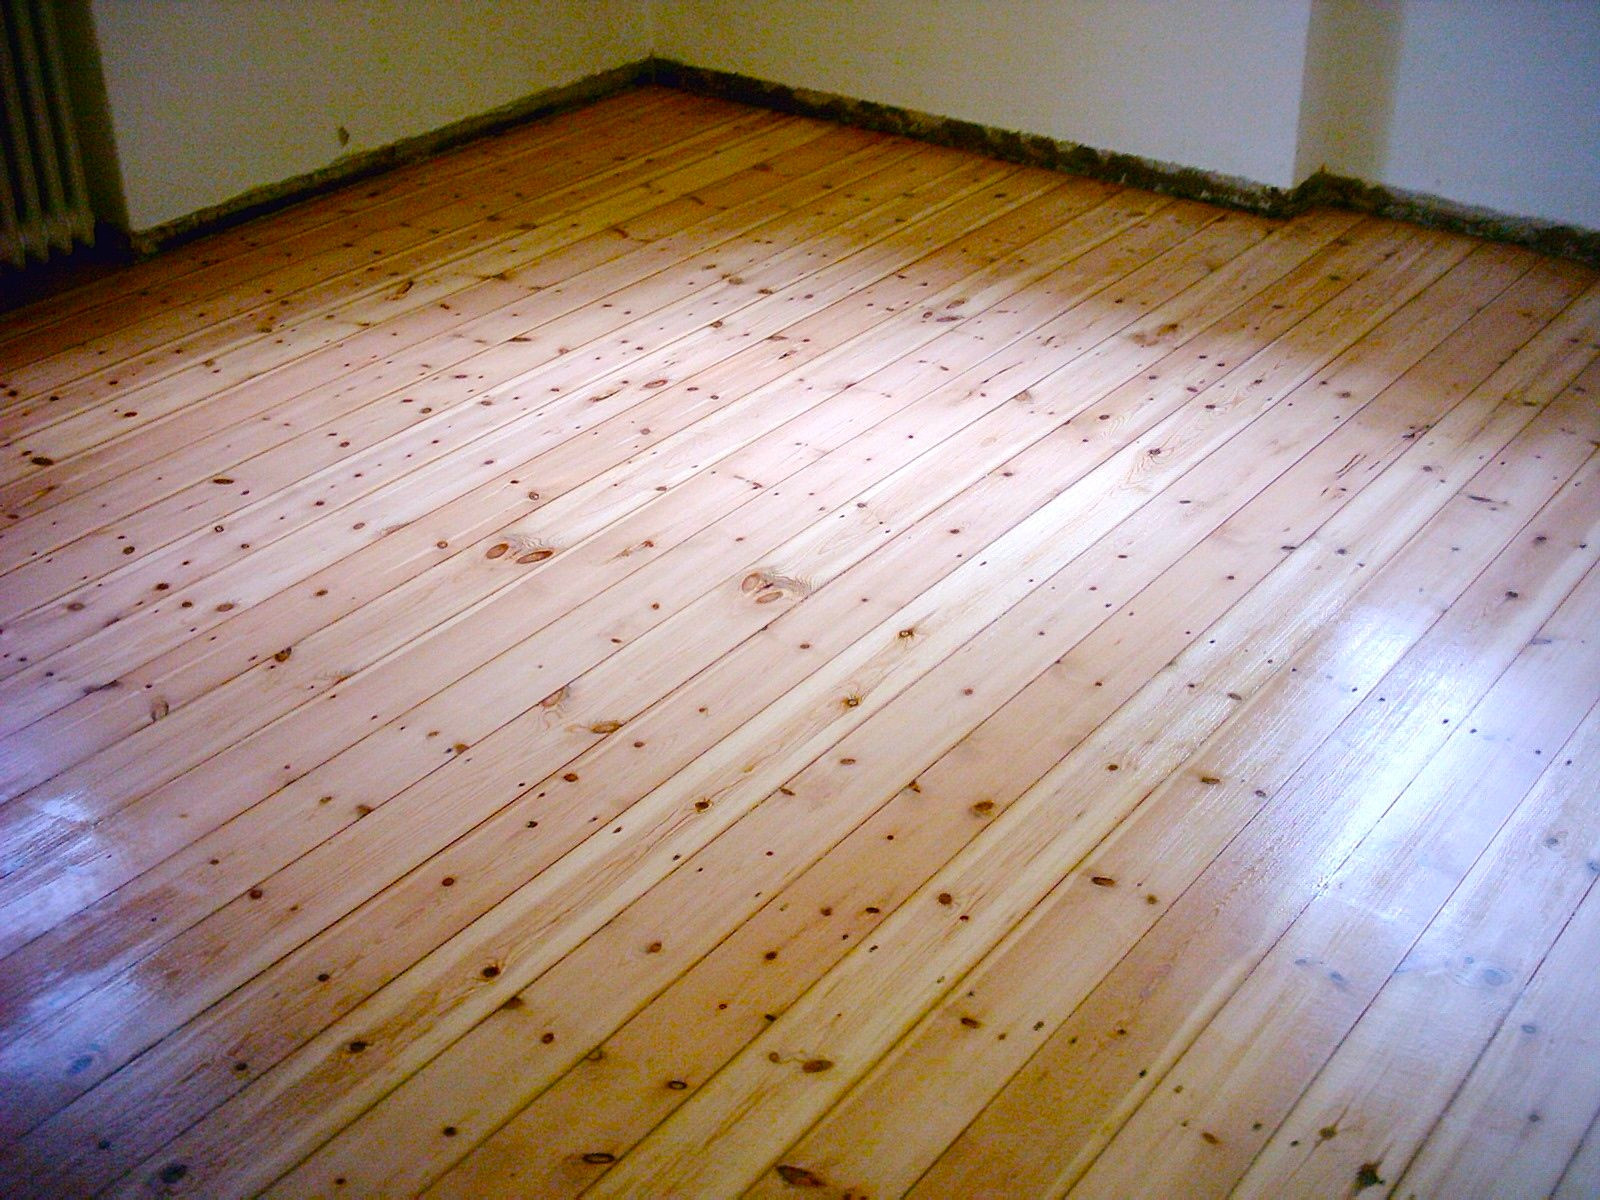 Sanding floorboards, acryl waterbased paint, satin